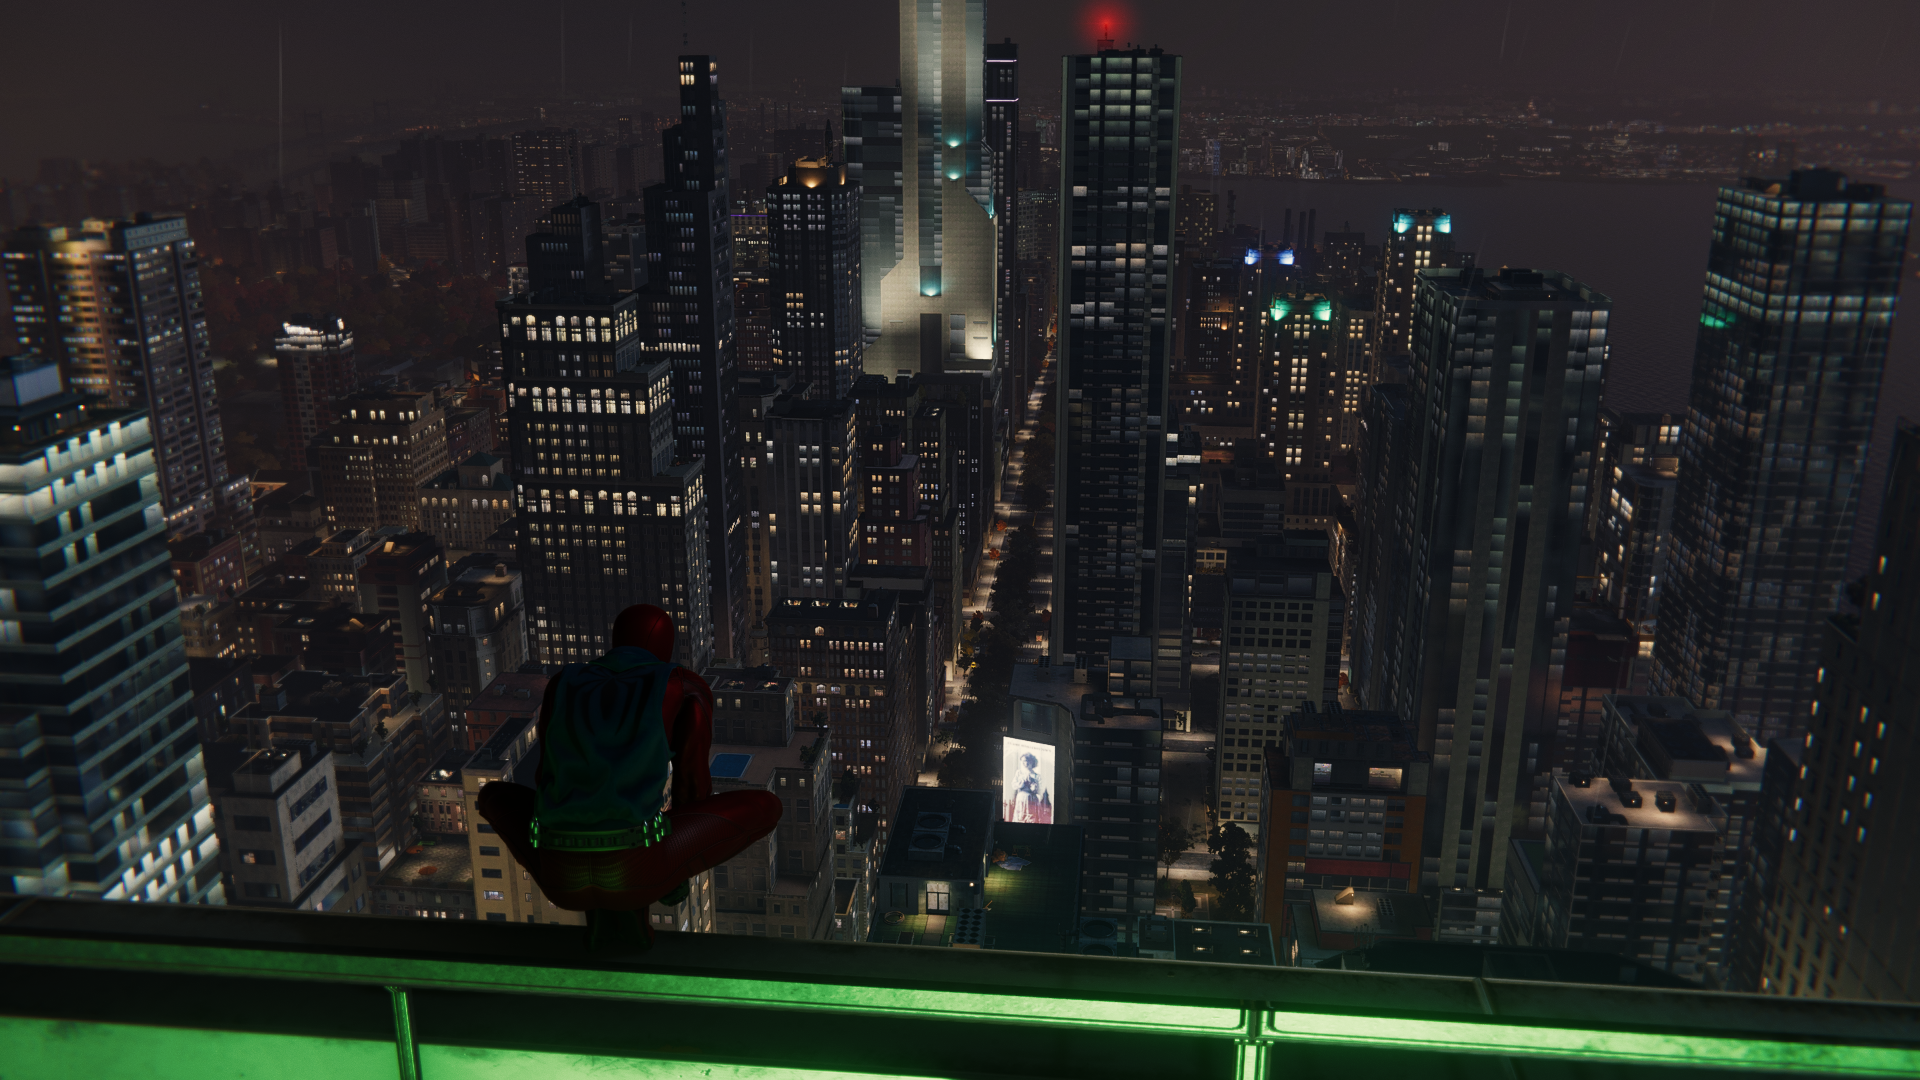 Spider Man Ps4 S Interior Mapping Shader Makes The City Pop Resetera